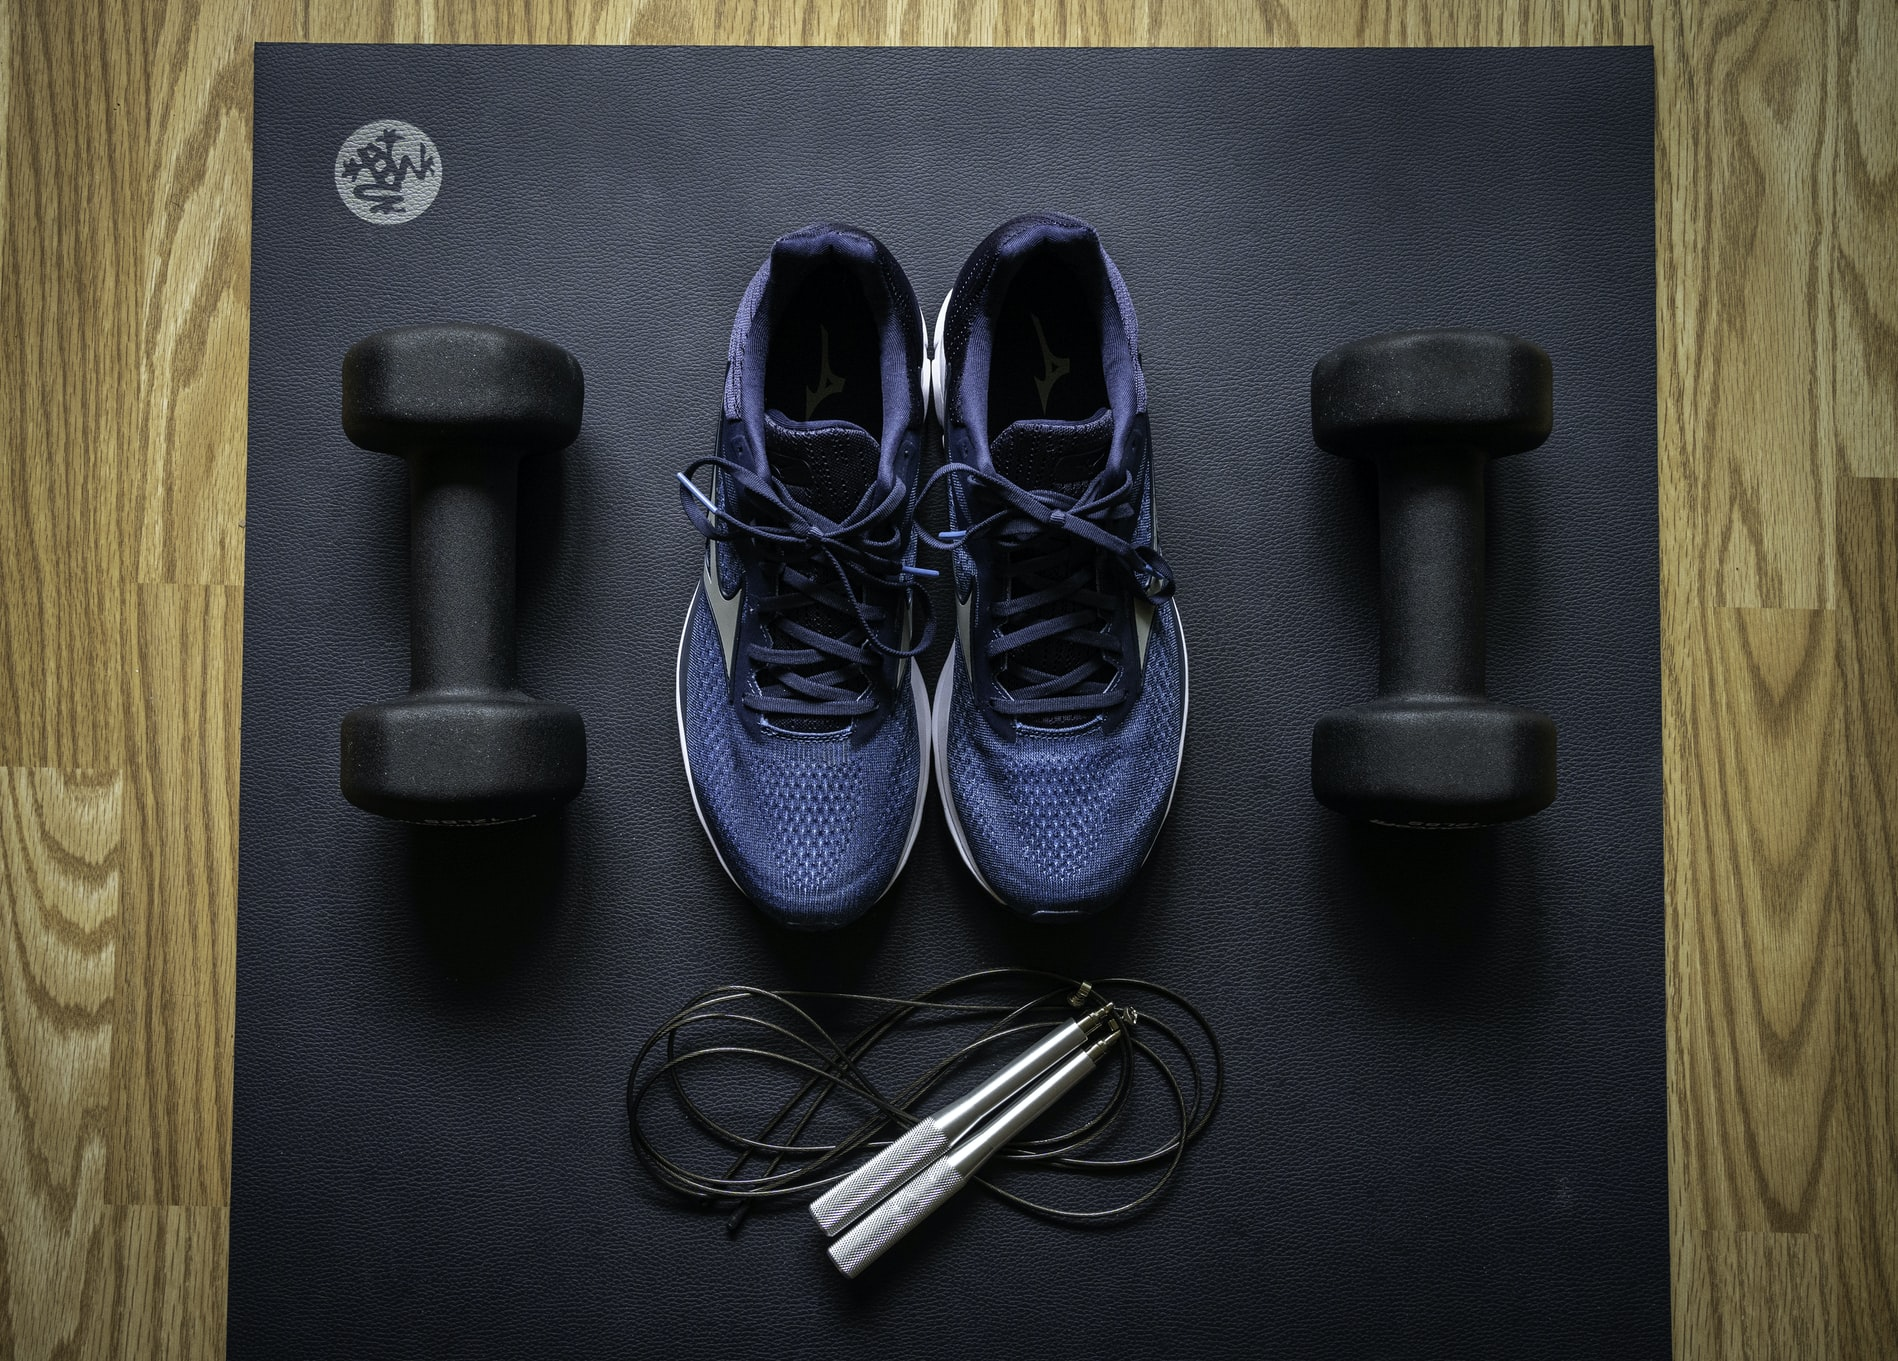 A pair of dumbbells, a jump rope, and a pair of blue shoes on a black exercise mat